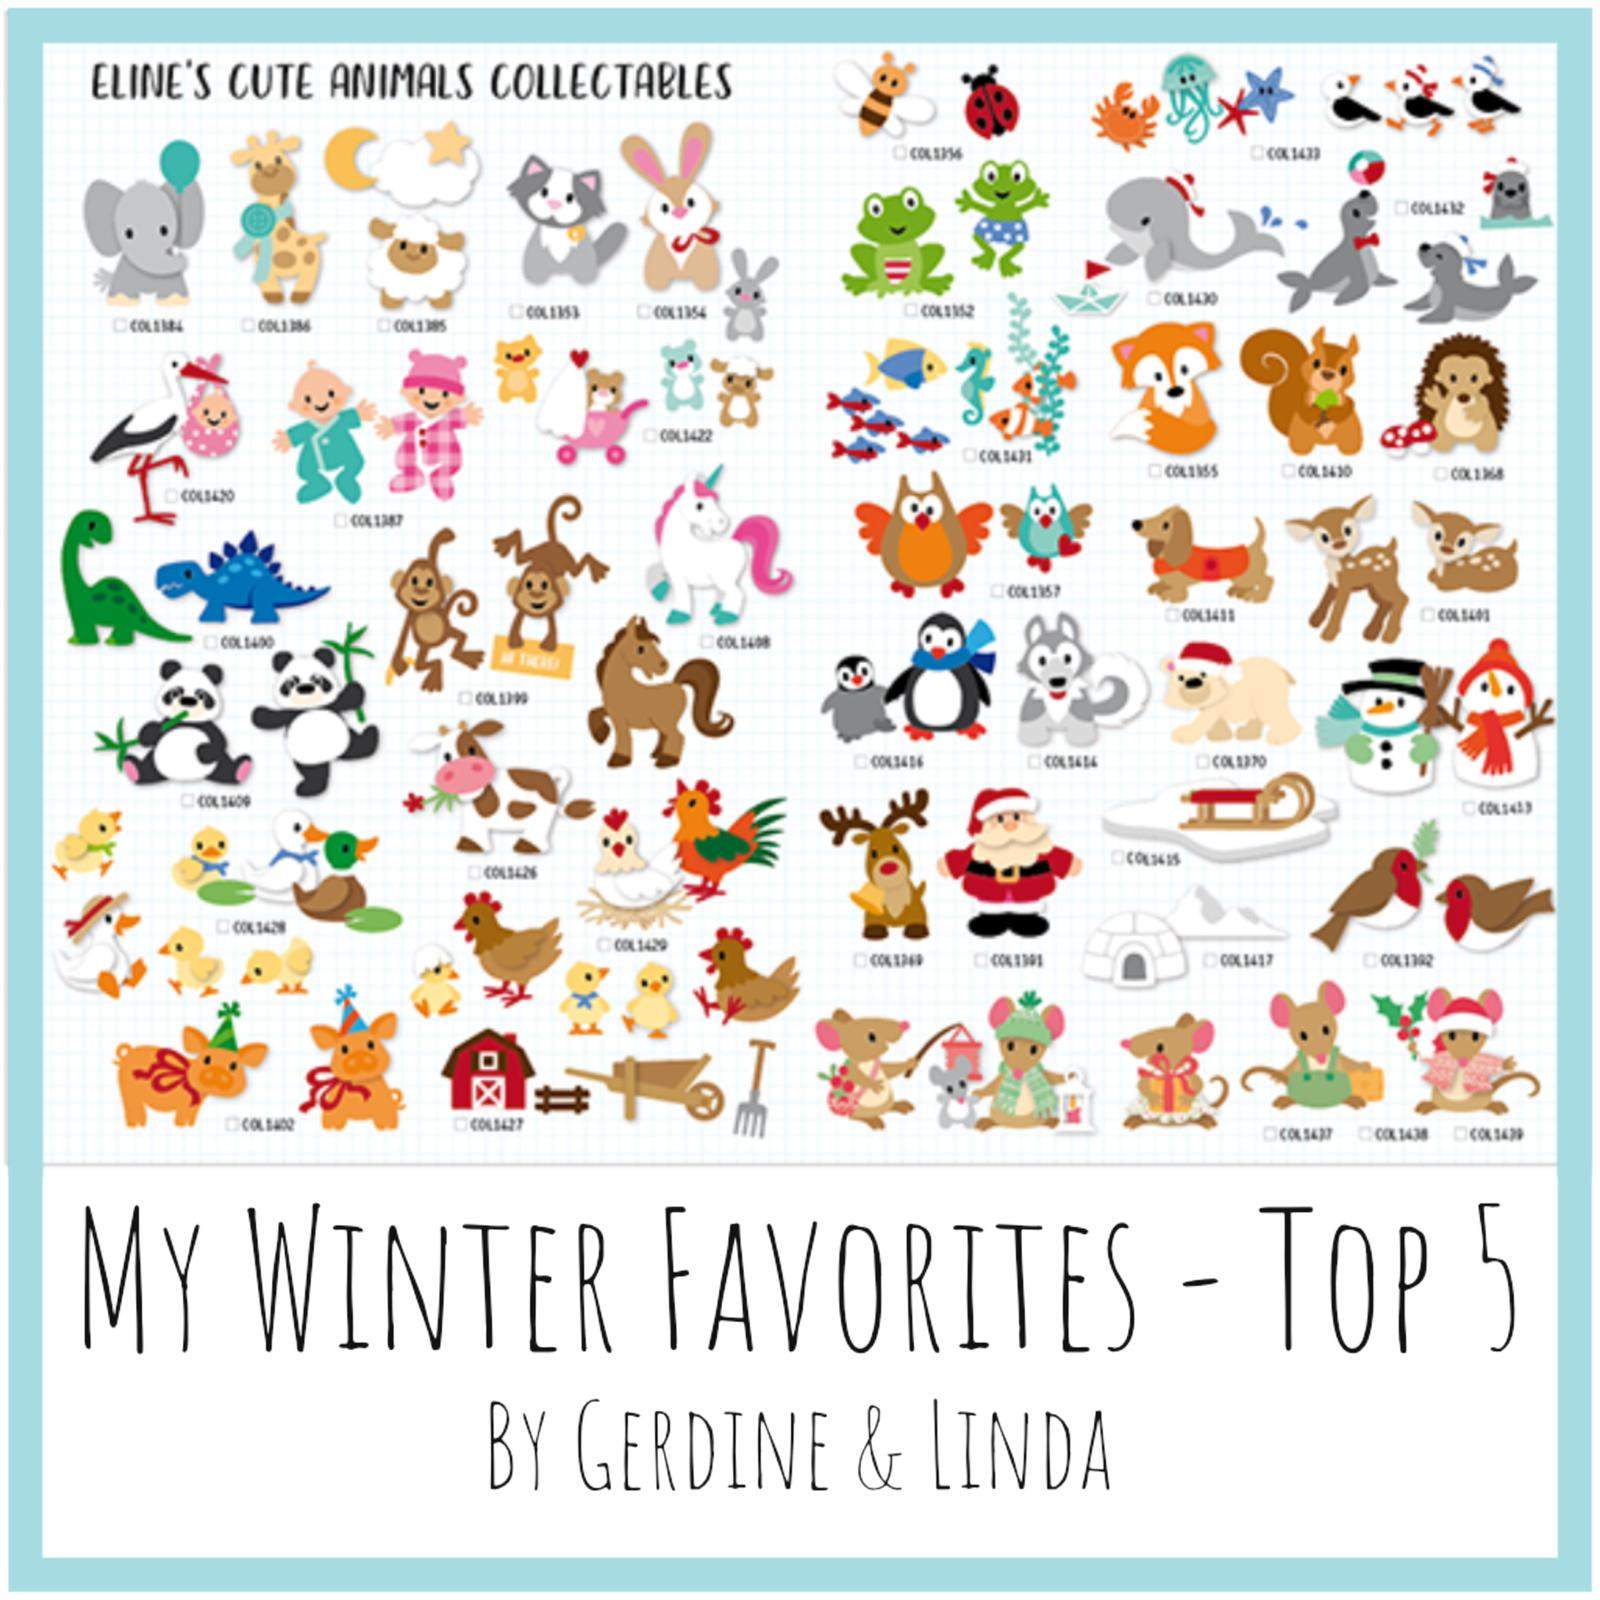 My winter favorites - top 5